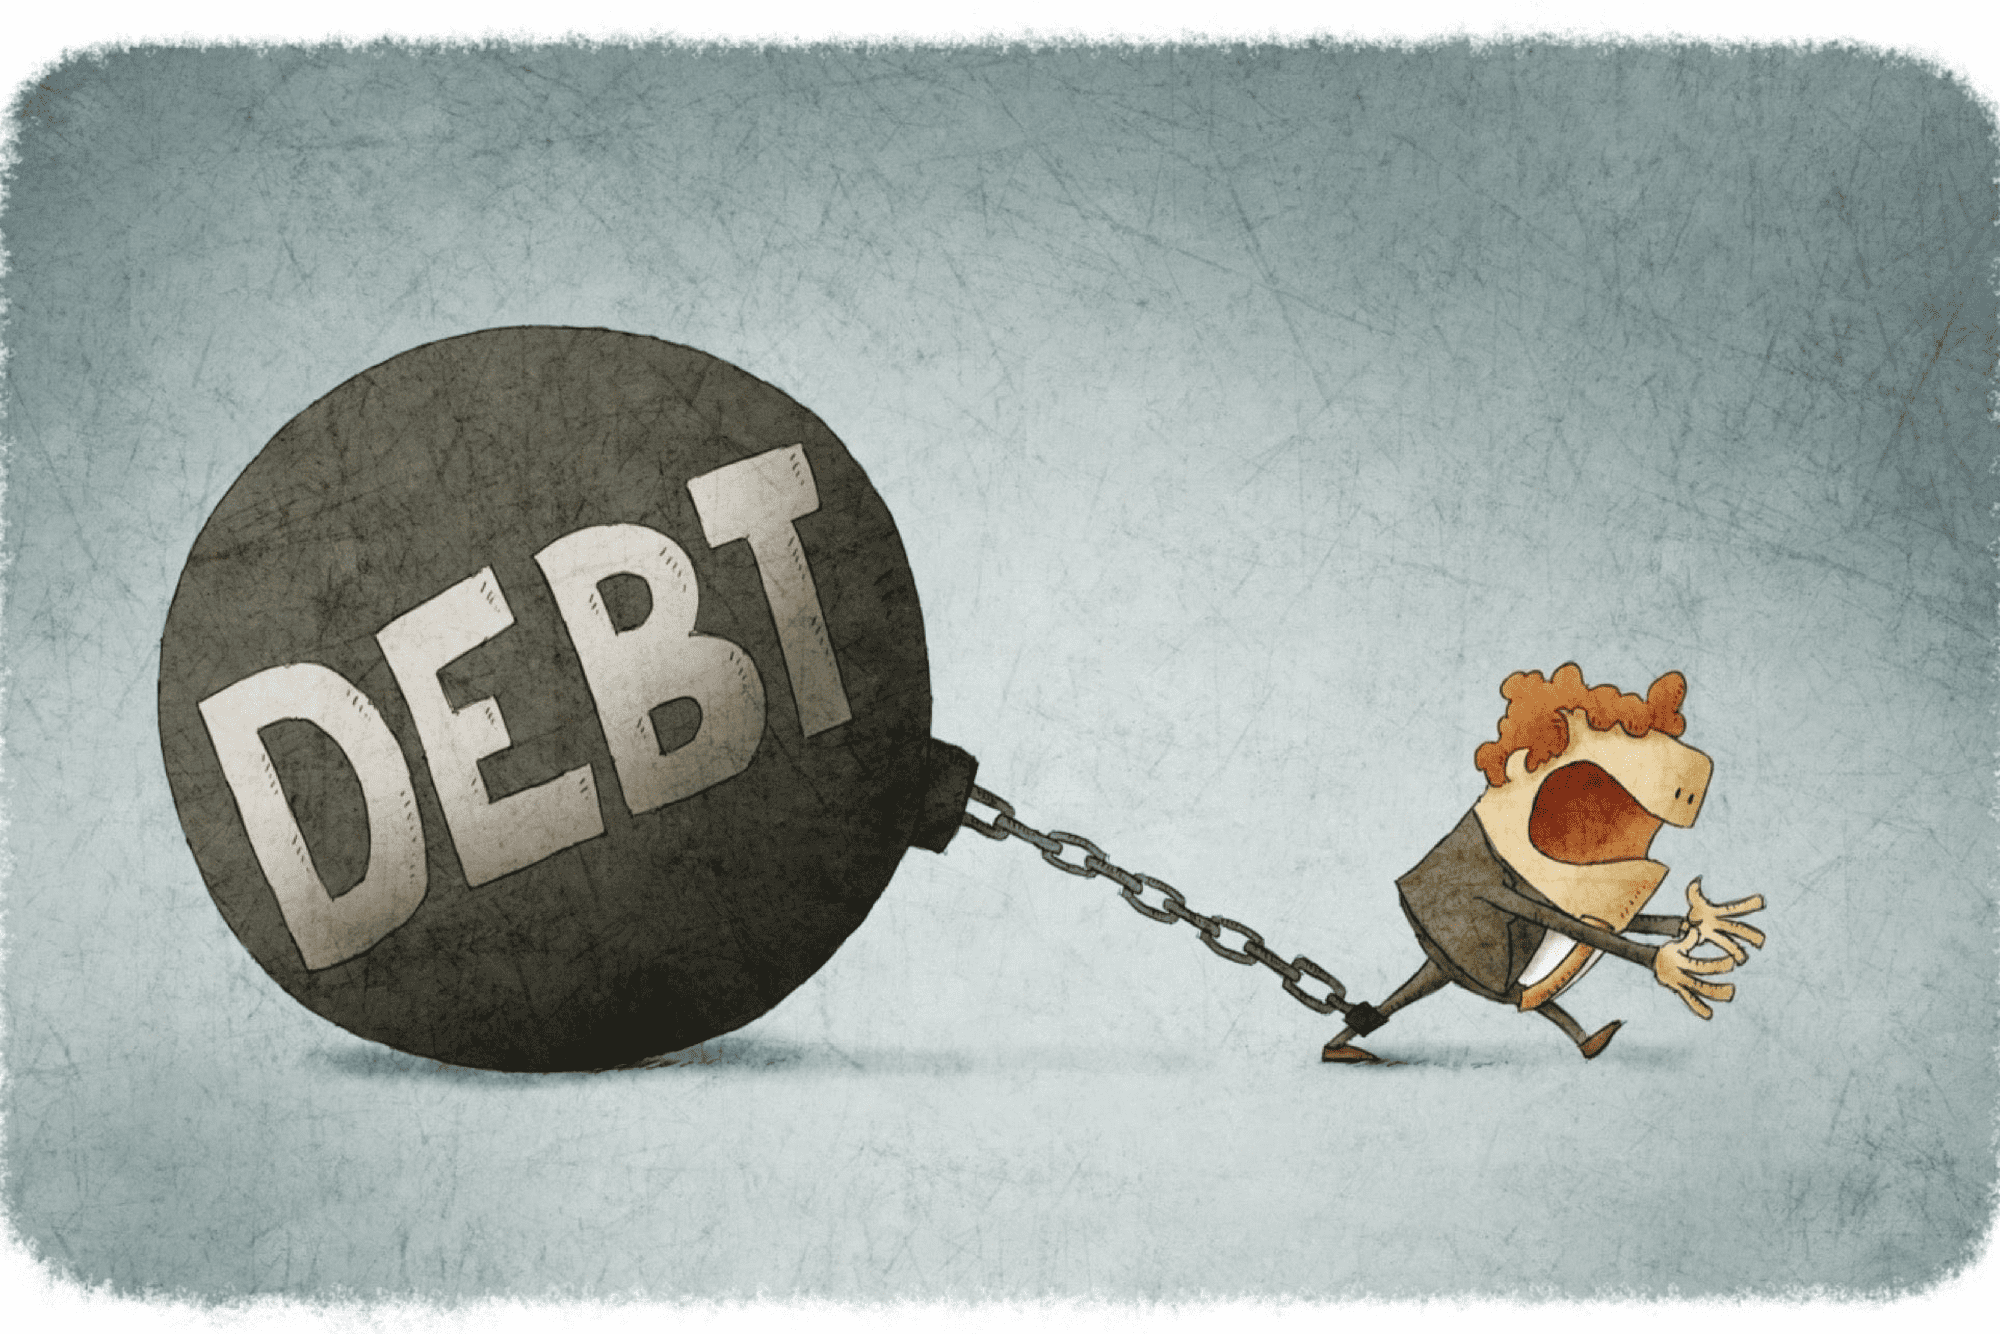 If I have debts that are old, don't they get written off anyway?